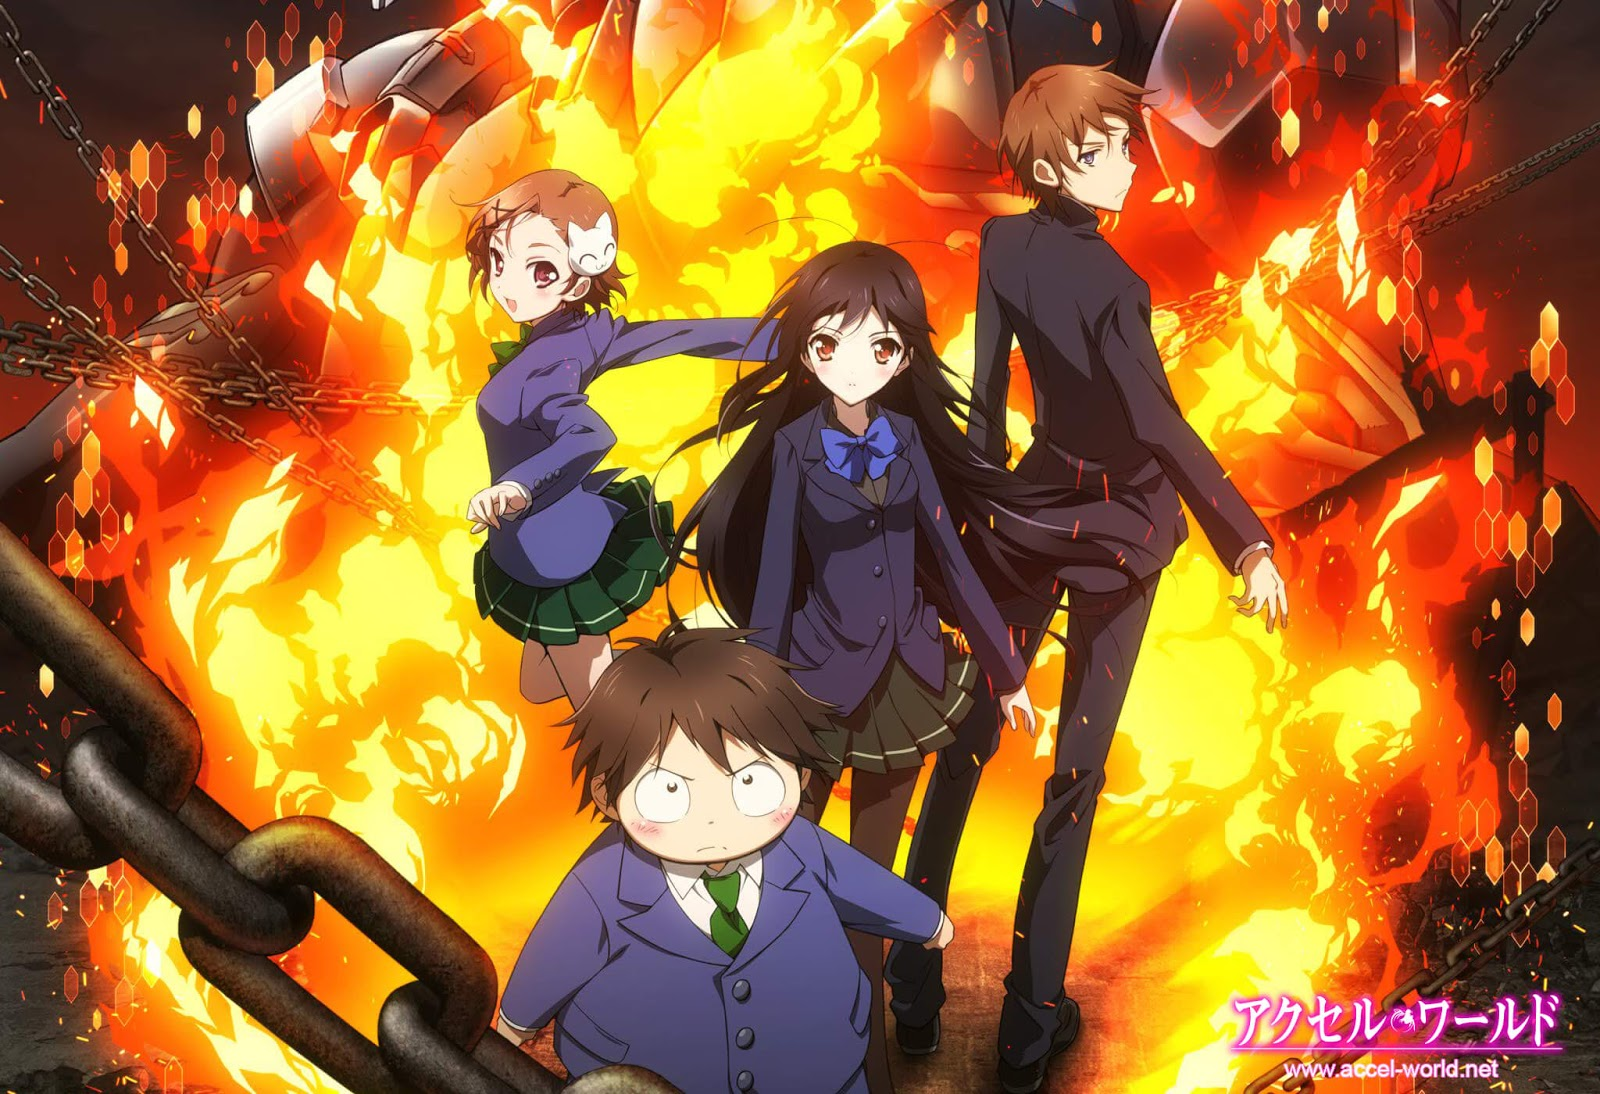 Download Accel World [BD] Sub Indo : Episode 1-24 END